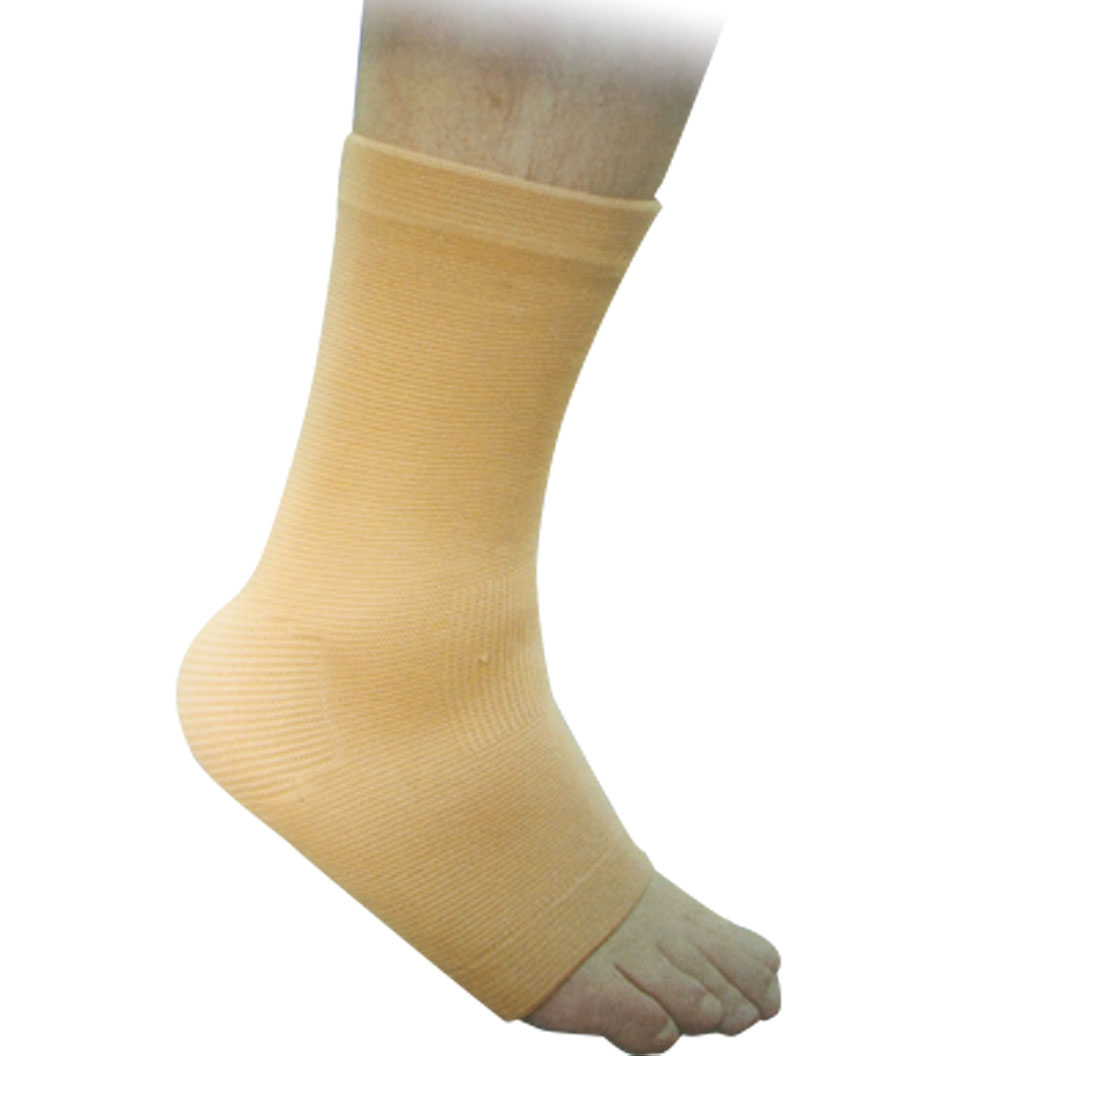 Light Brown Stretchy Ankle Support Exercise Protector